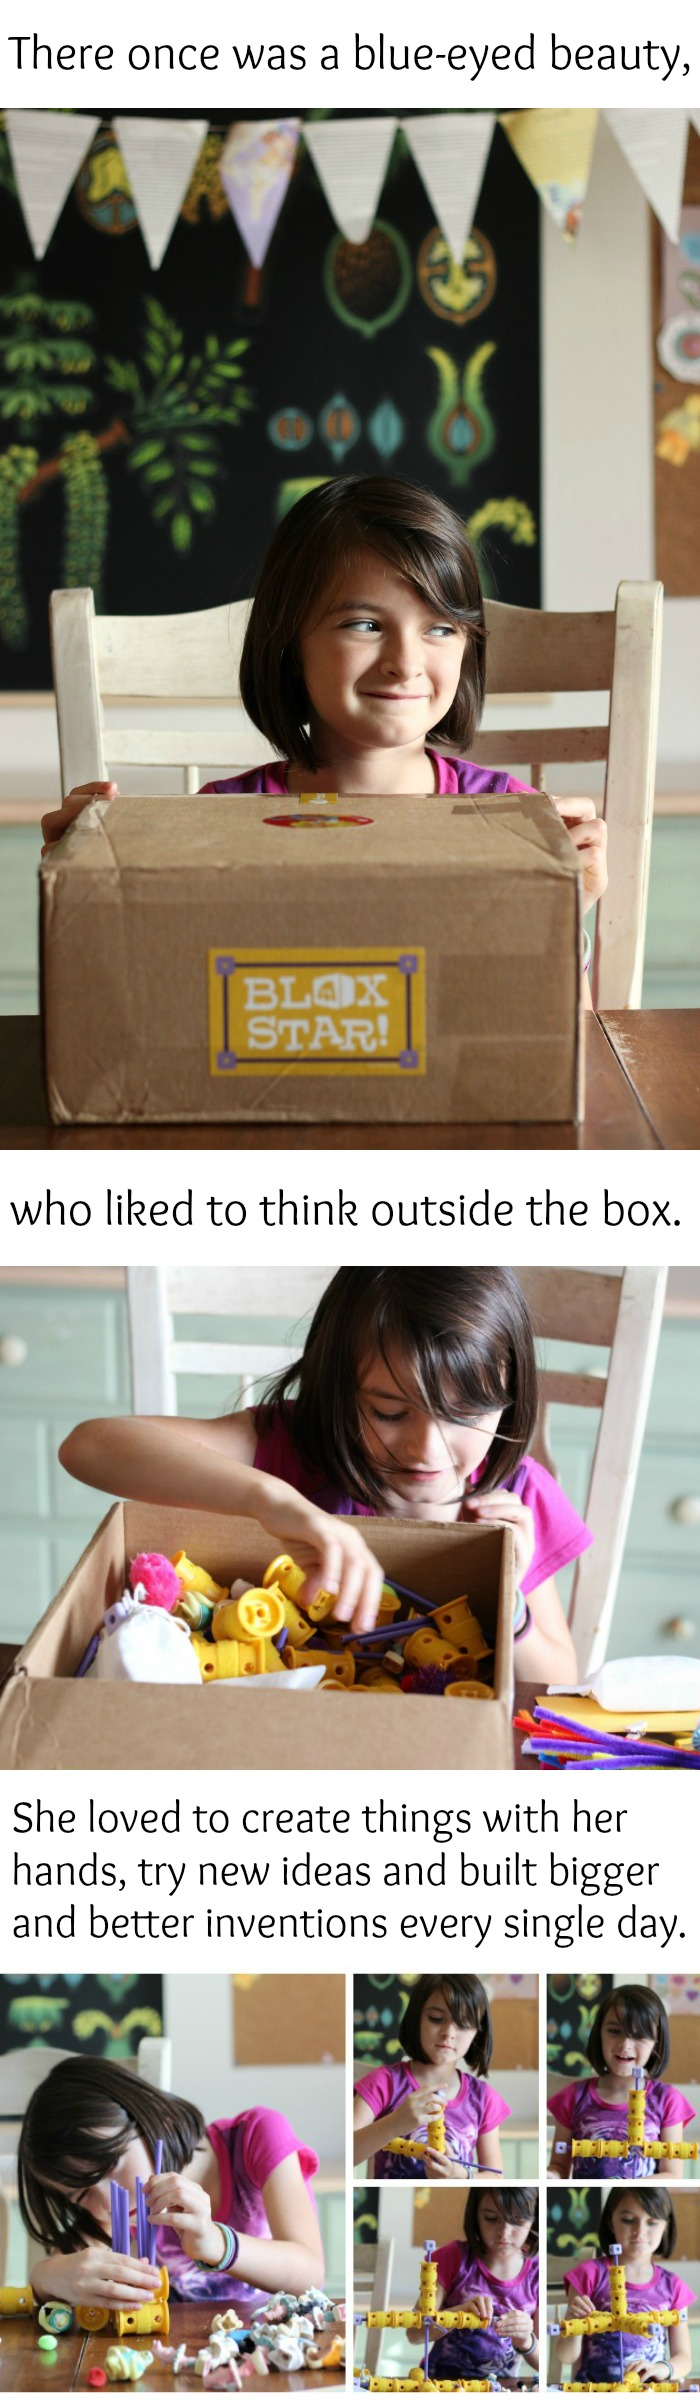 Do you have a girl who likes to think outside the box? You'll probably like this story.